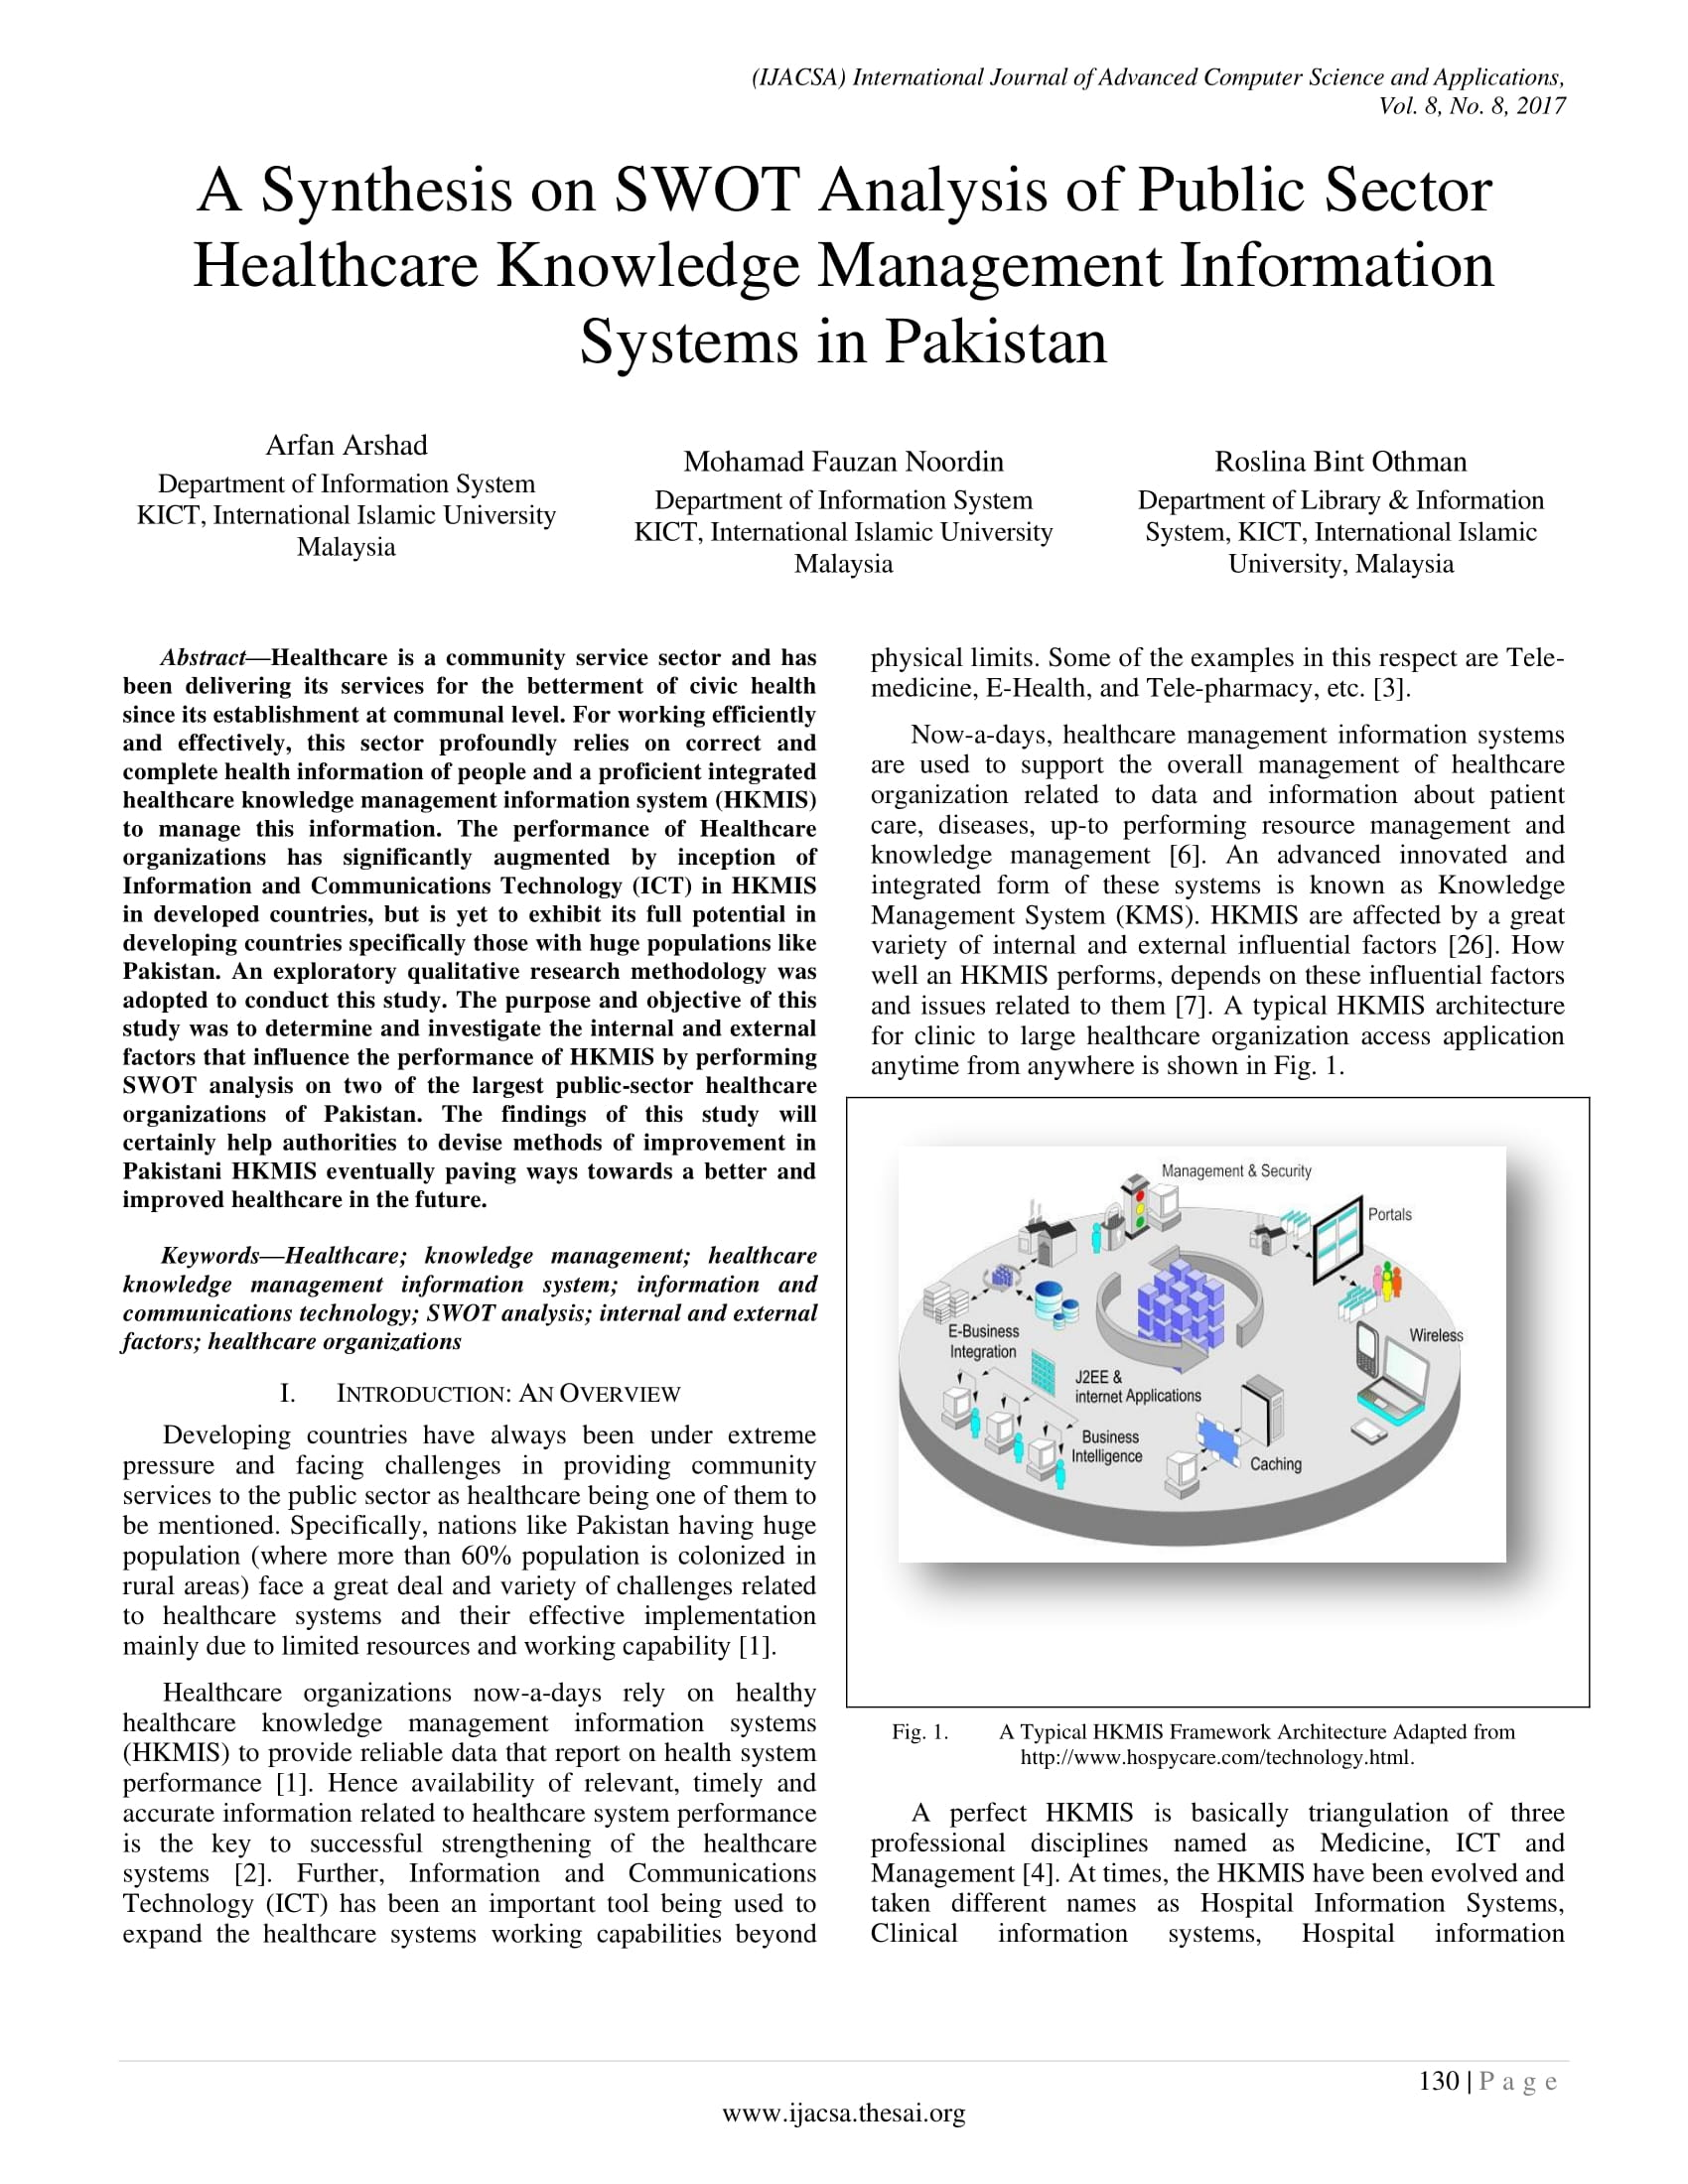 synthesis on swot analysis of public sector healthcare knowledge management information systems example 1